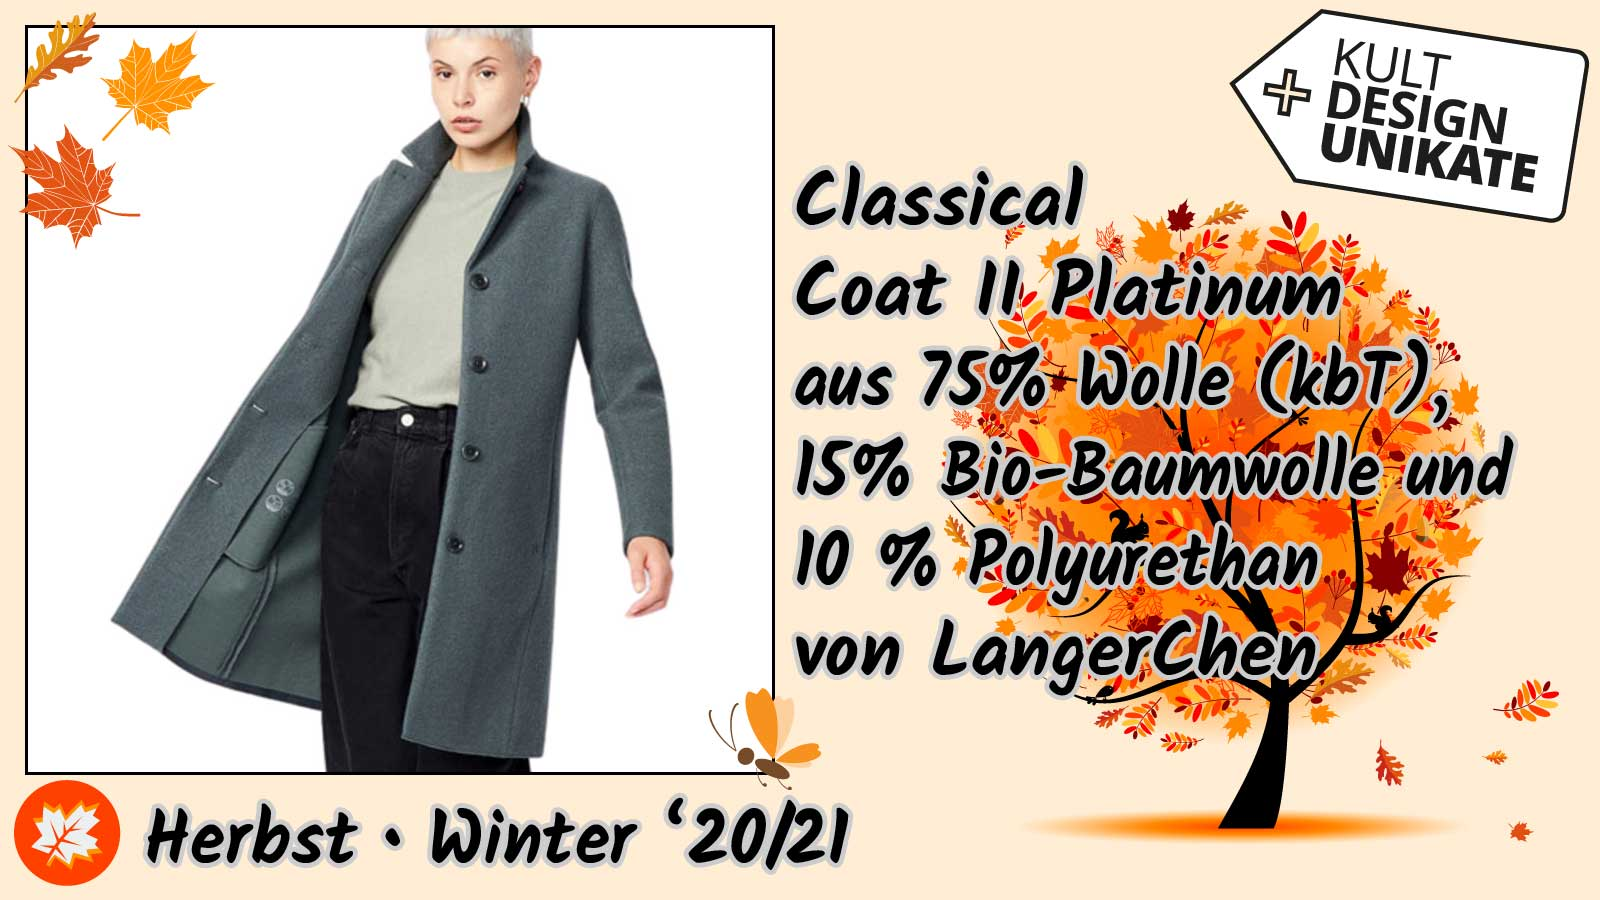 Langerchen-Classical-Coat-II-Platinum